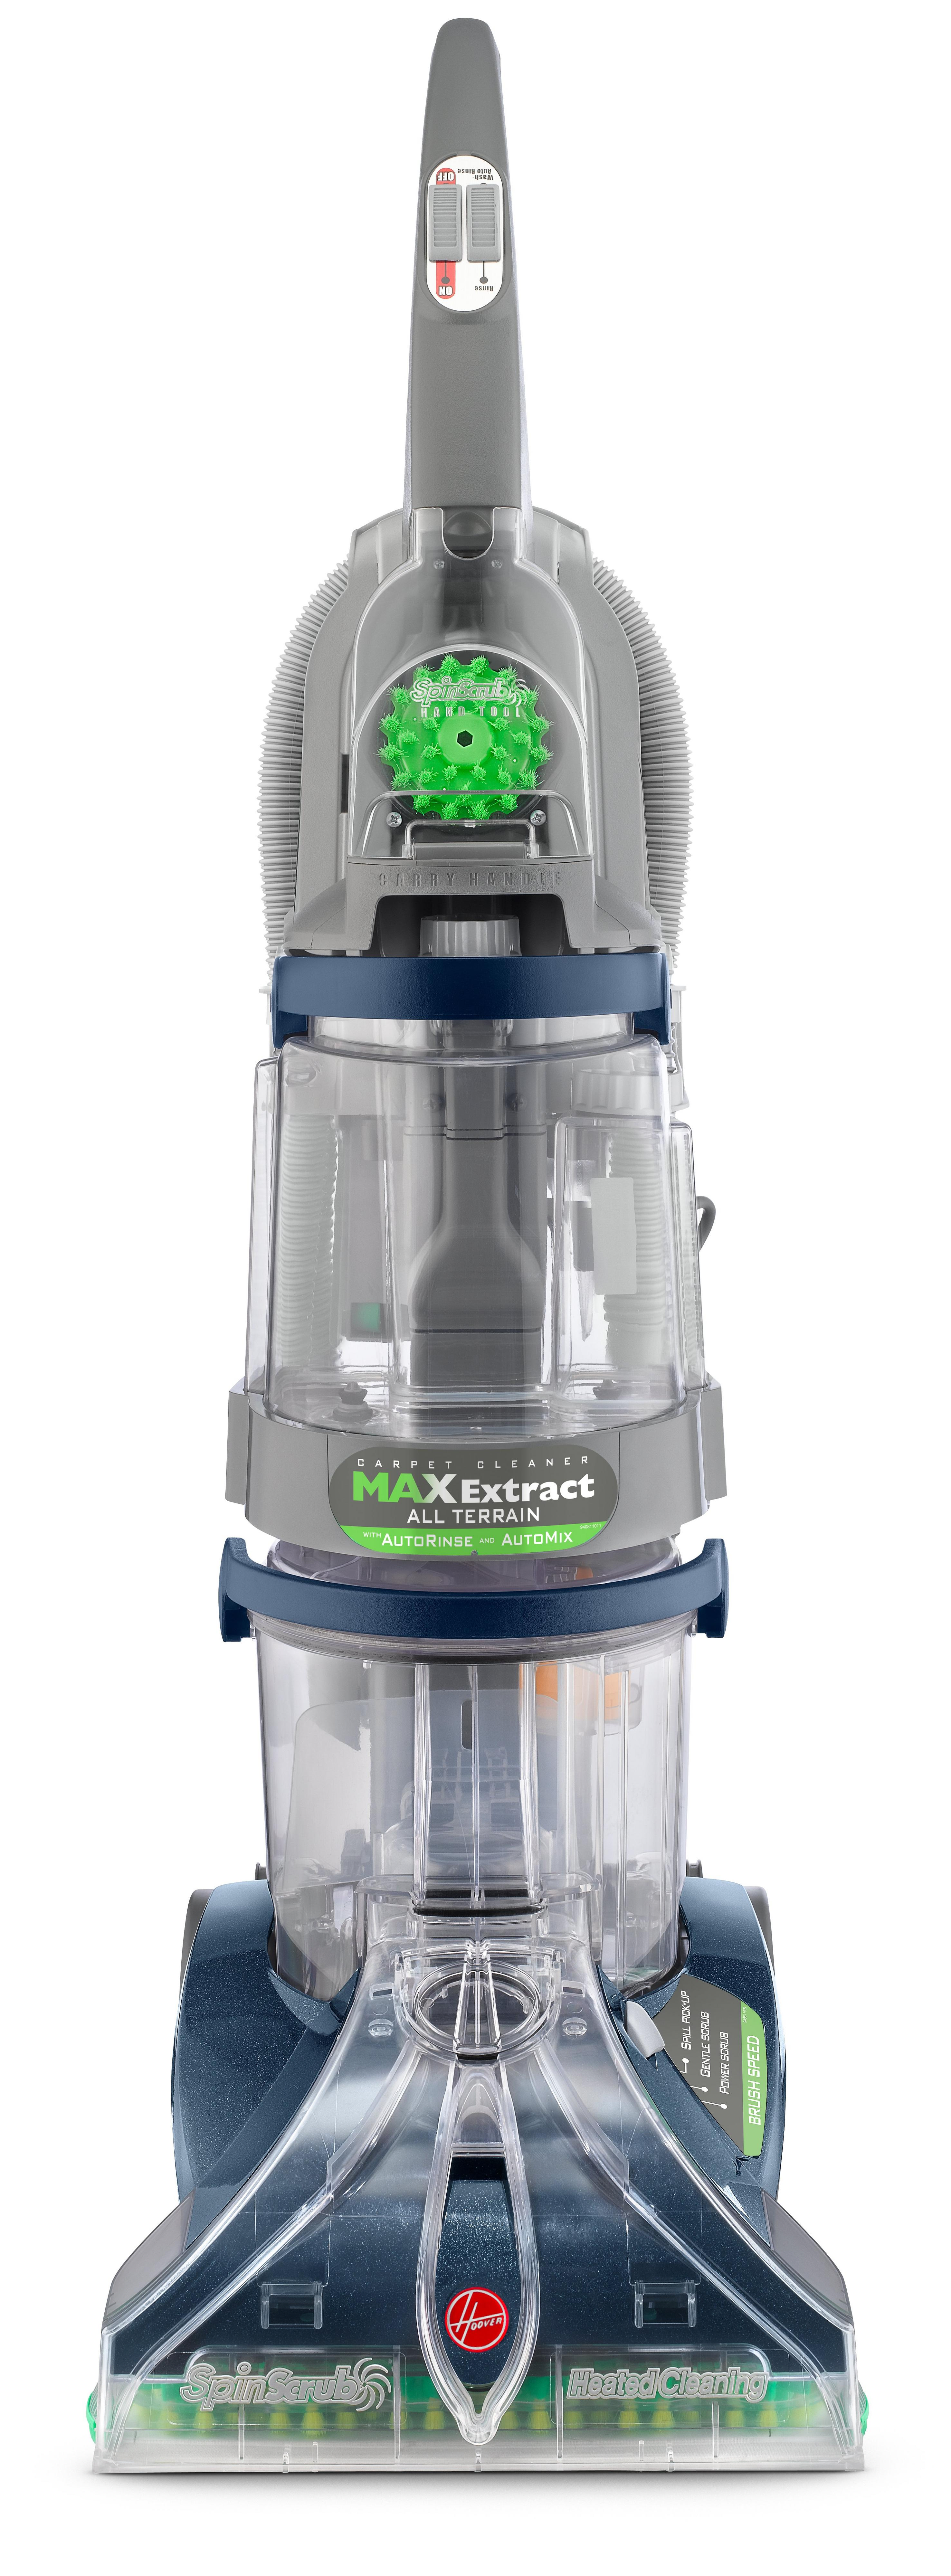 Max Extract Dual V WidePath Carpet Washer